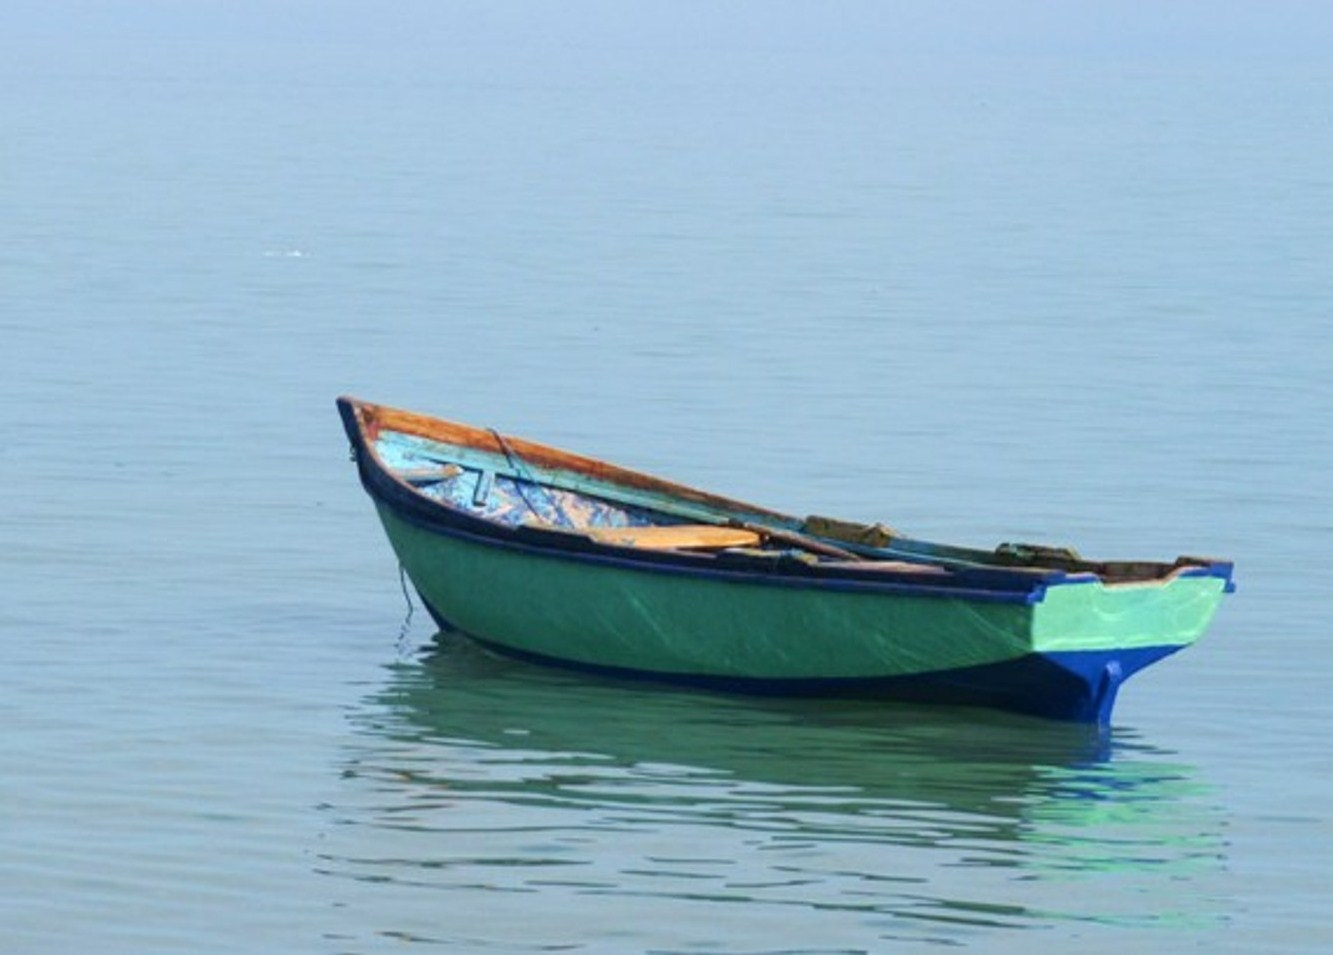 Yola (boat), Miches